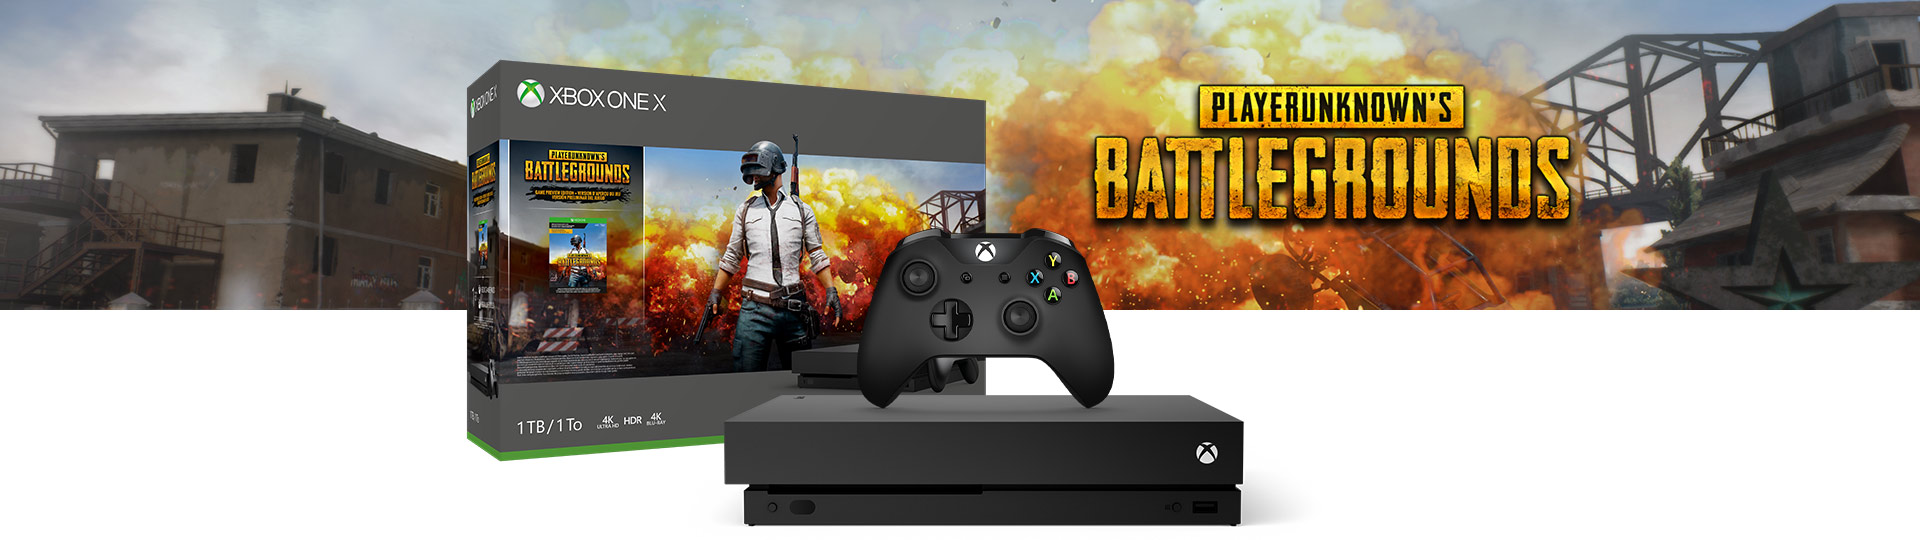 Xbox One X Playerunknown S Battlegrounds Bundle 1tb Xbox